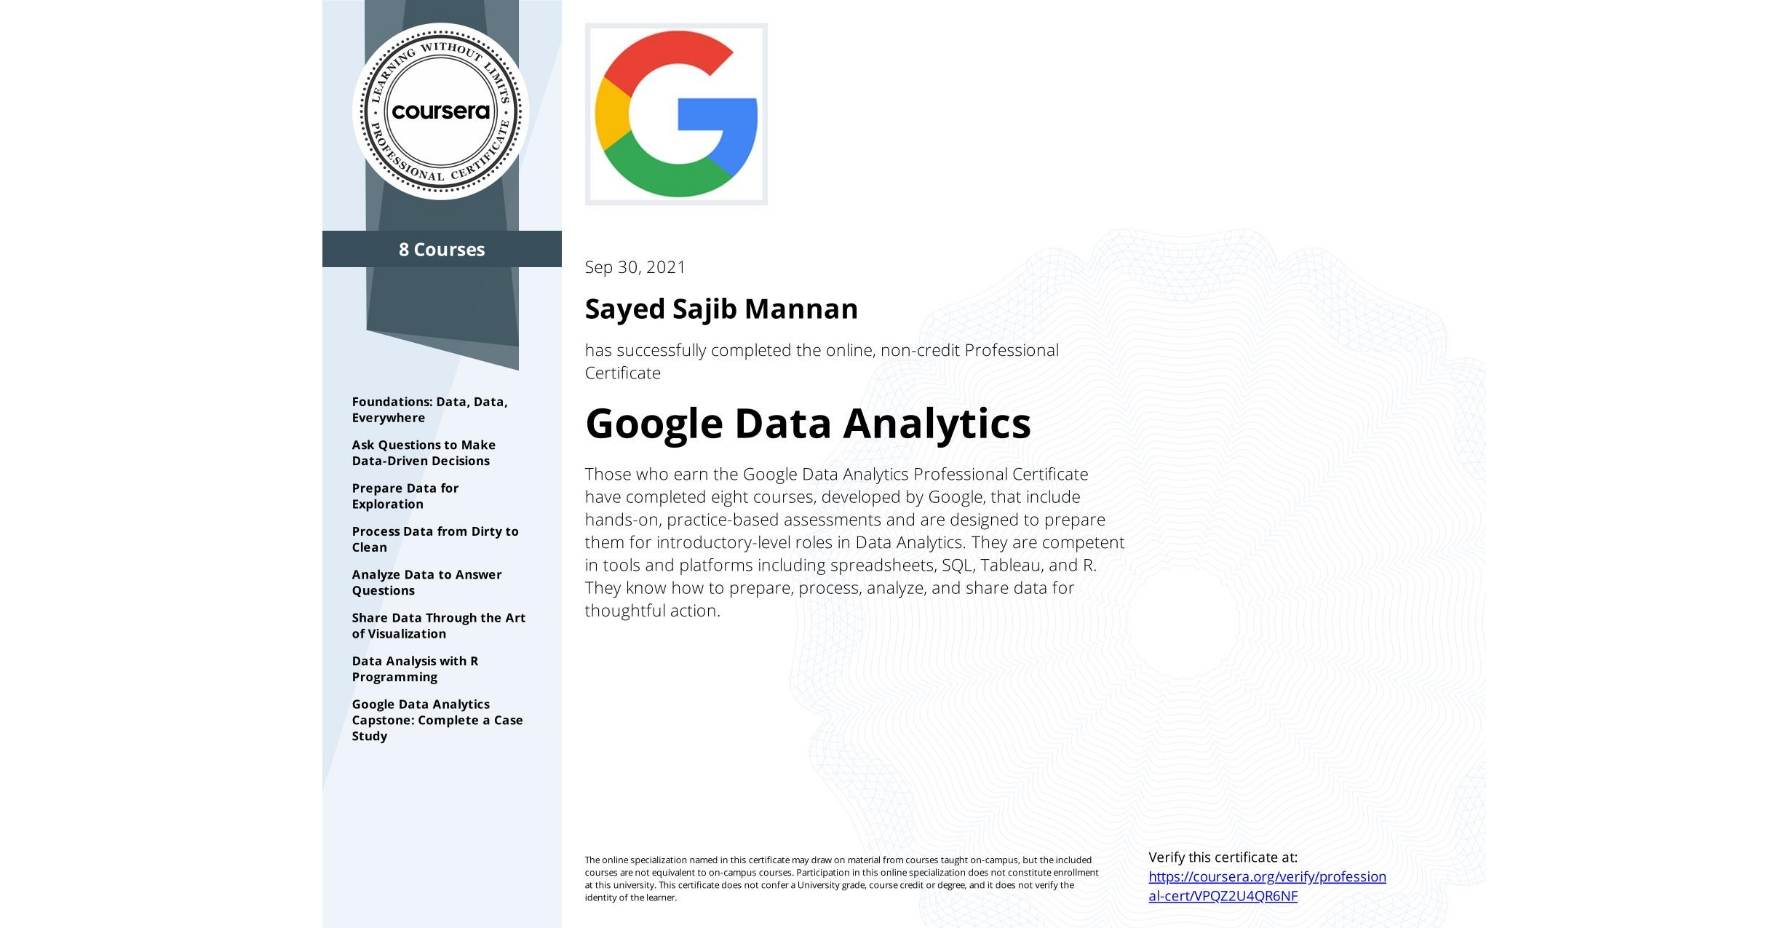 View certificate for Sayed Sajib  Mannan, Google Data Analytics, offered through Coursera. Those who earn the Google Data Analytics Professional Certificate have completed eight courses, developed by Google, that include hands-on, practice-based assessments and are designed to prepare them for introductory-level roles in Data Analytics. They are competent in tools and platforms including spreadsheets, SQL, Tableau, and R. They know how to prepare, process, analyze, and share data for thoughtful action.